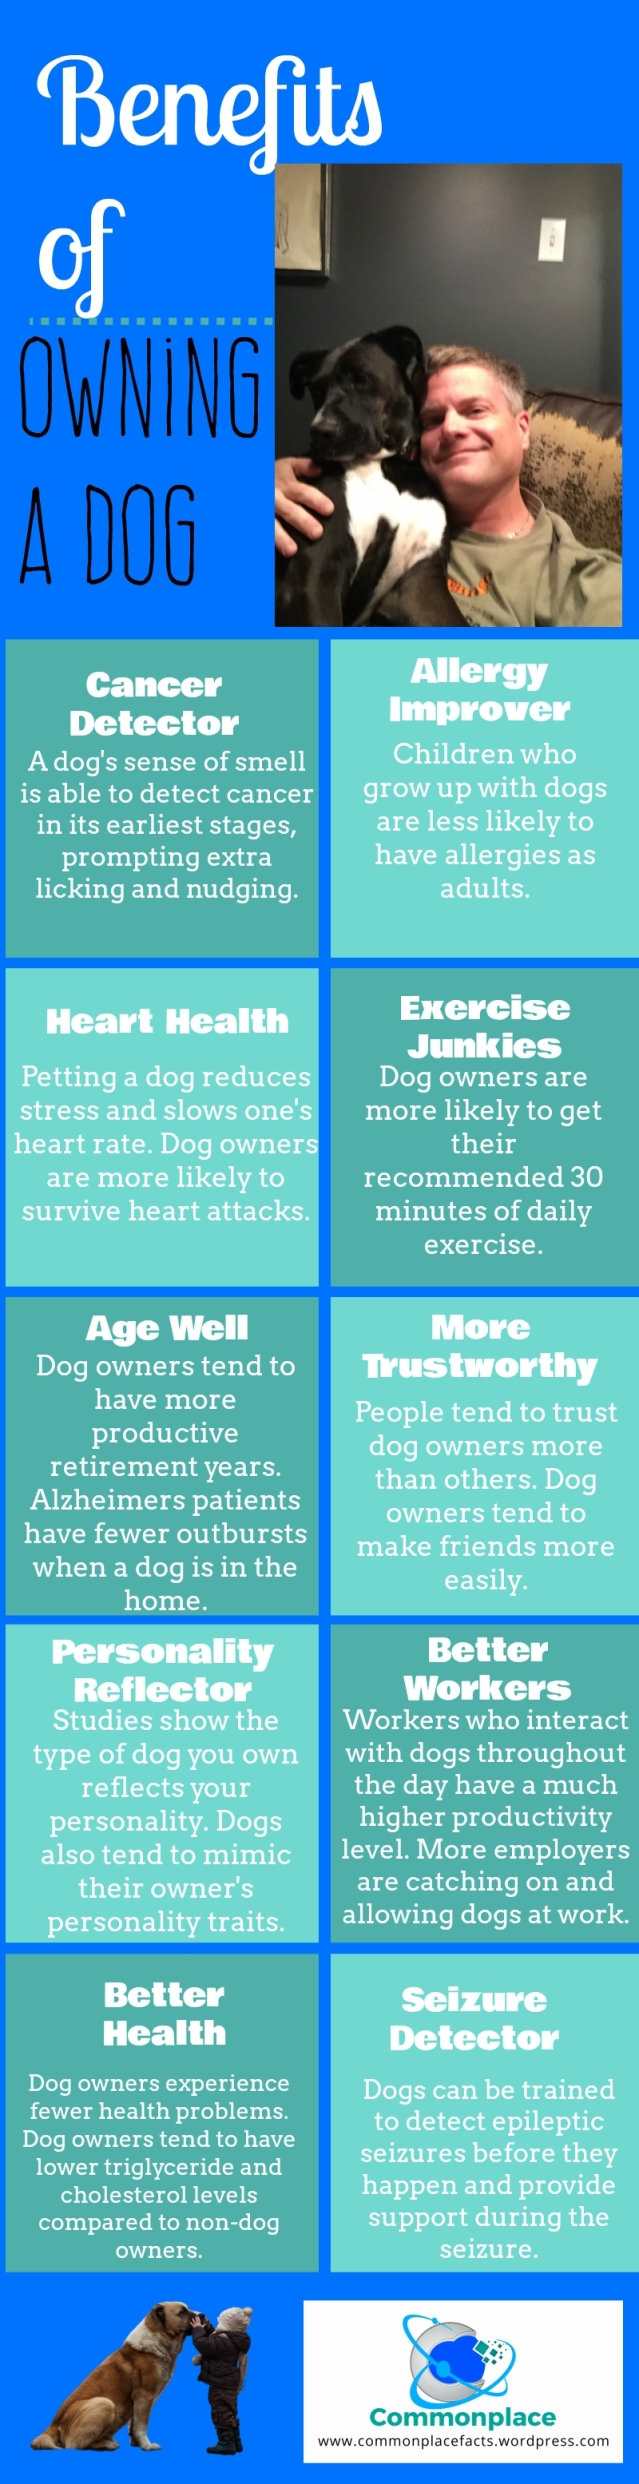 10 benefits of owning a dog